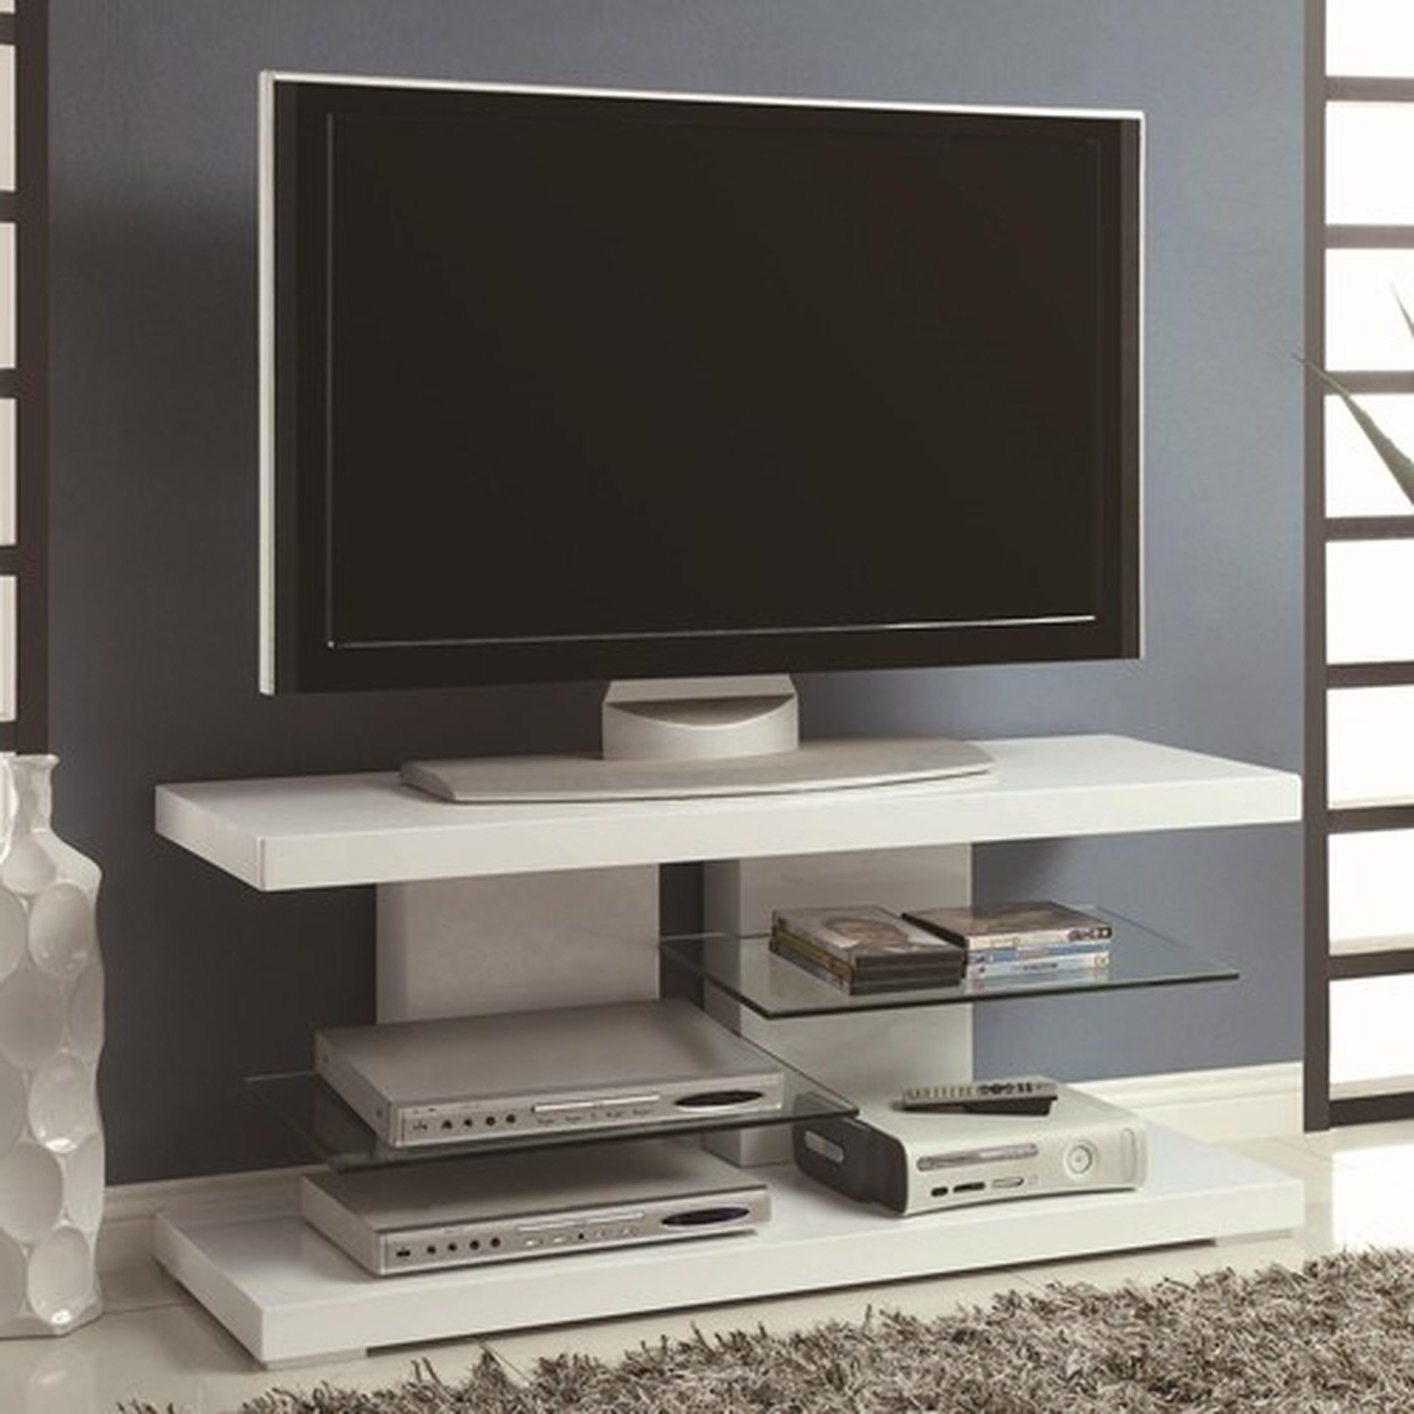 Most Popular White Gloss Tv Benches With White Glass Tv Stand – Steal A Sofa Furniture Outlet Los Angeles Ca (Gallery 10 of 20)